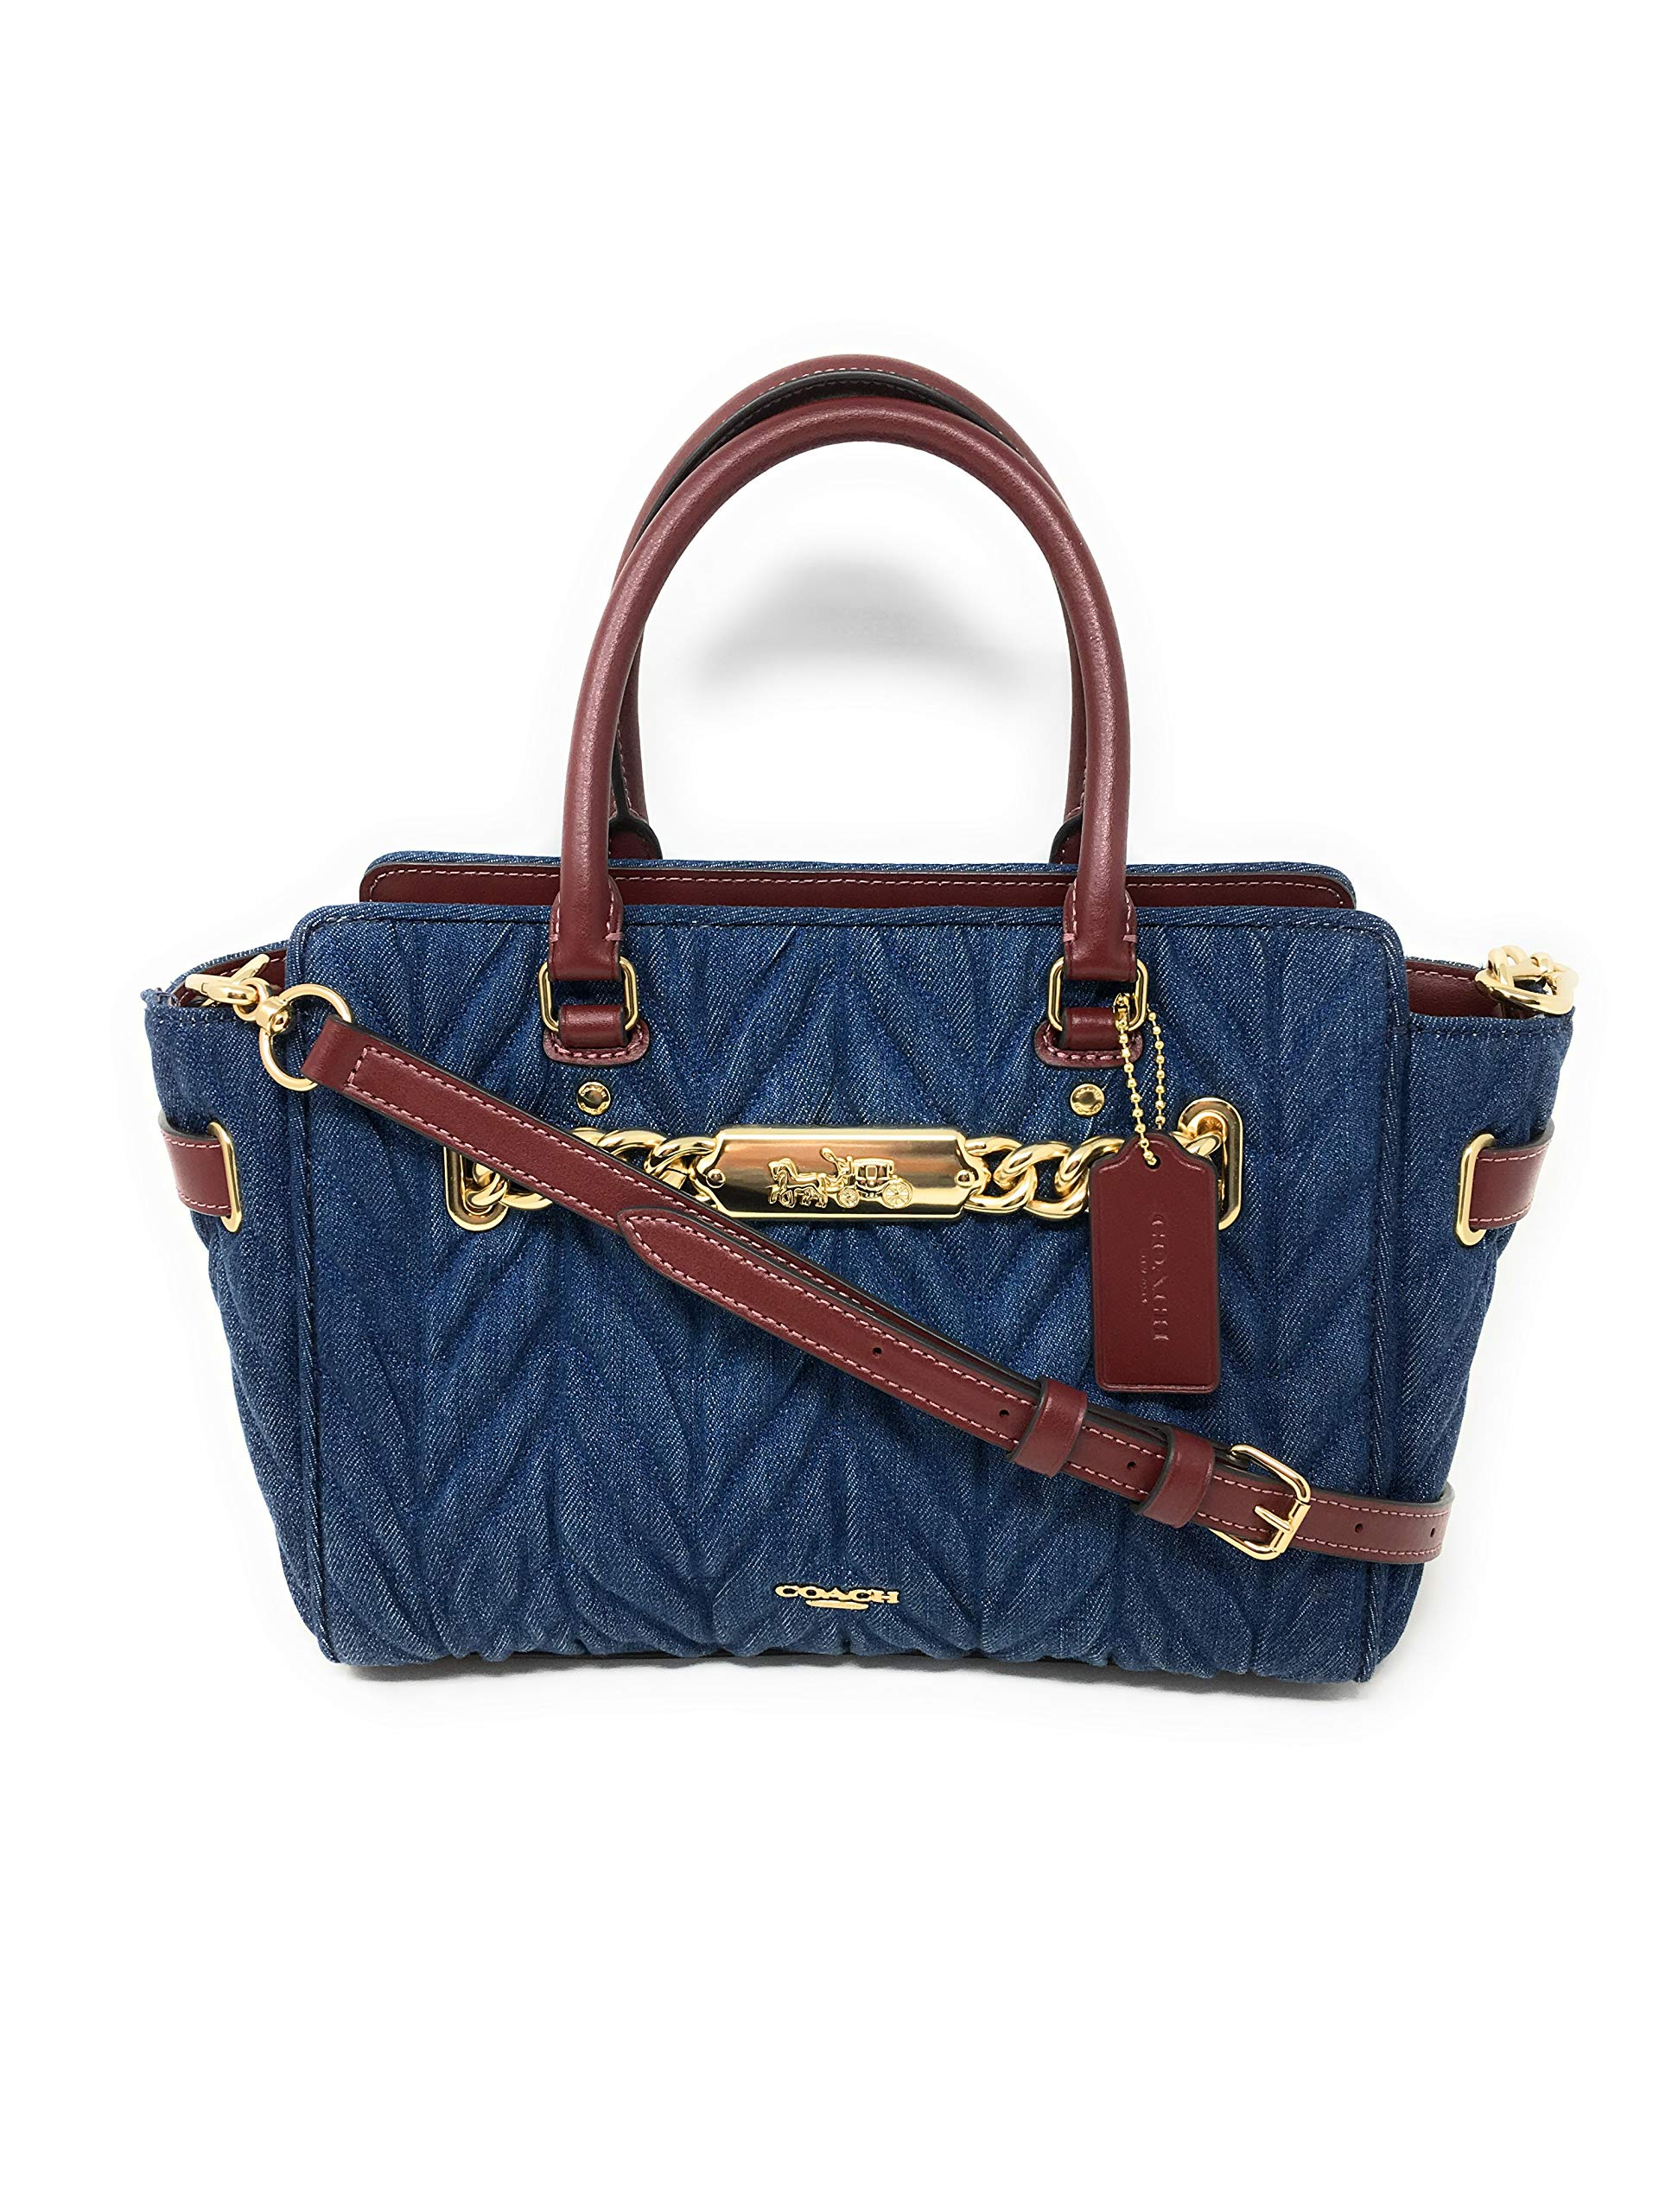 COACH F39905 BLAKE CARRYALL 25 WITH QUILTING DENIM